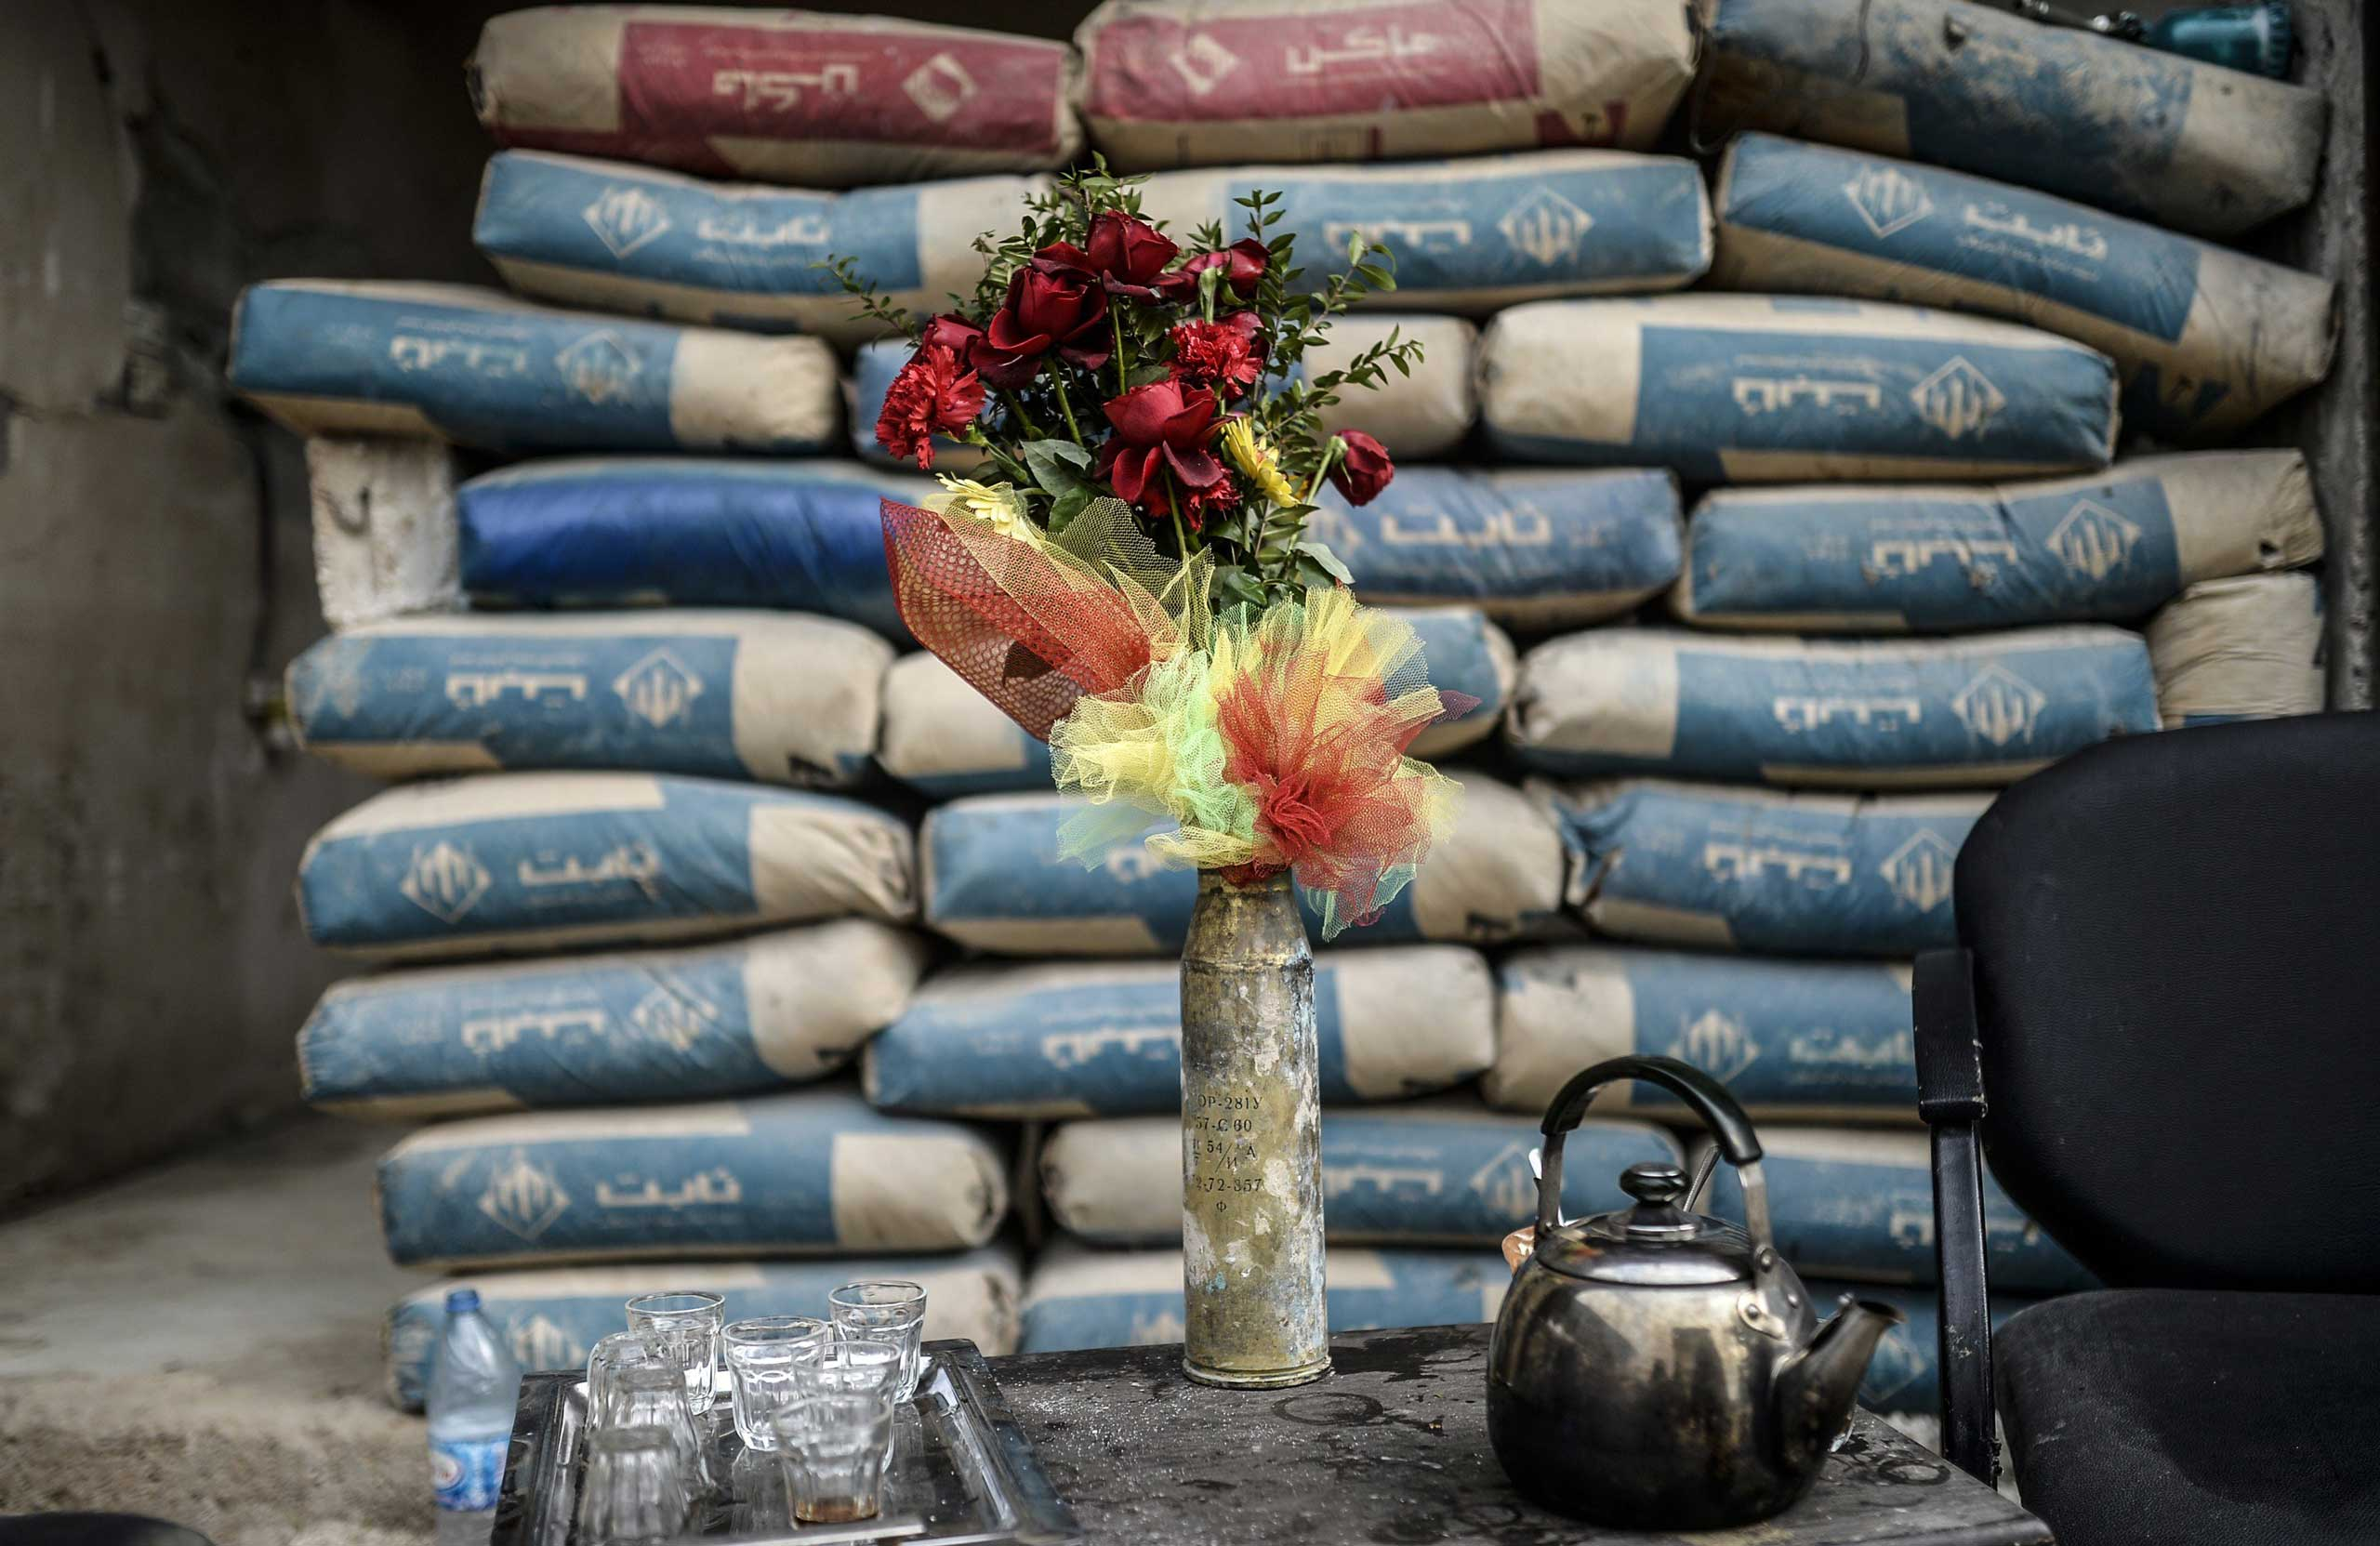 A shell is used as a vase in the Syrian border town of Kobani on Jan. 28, 2015.